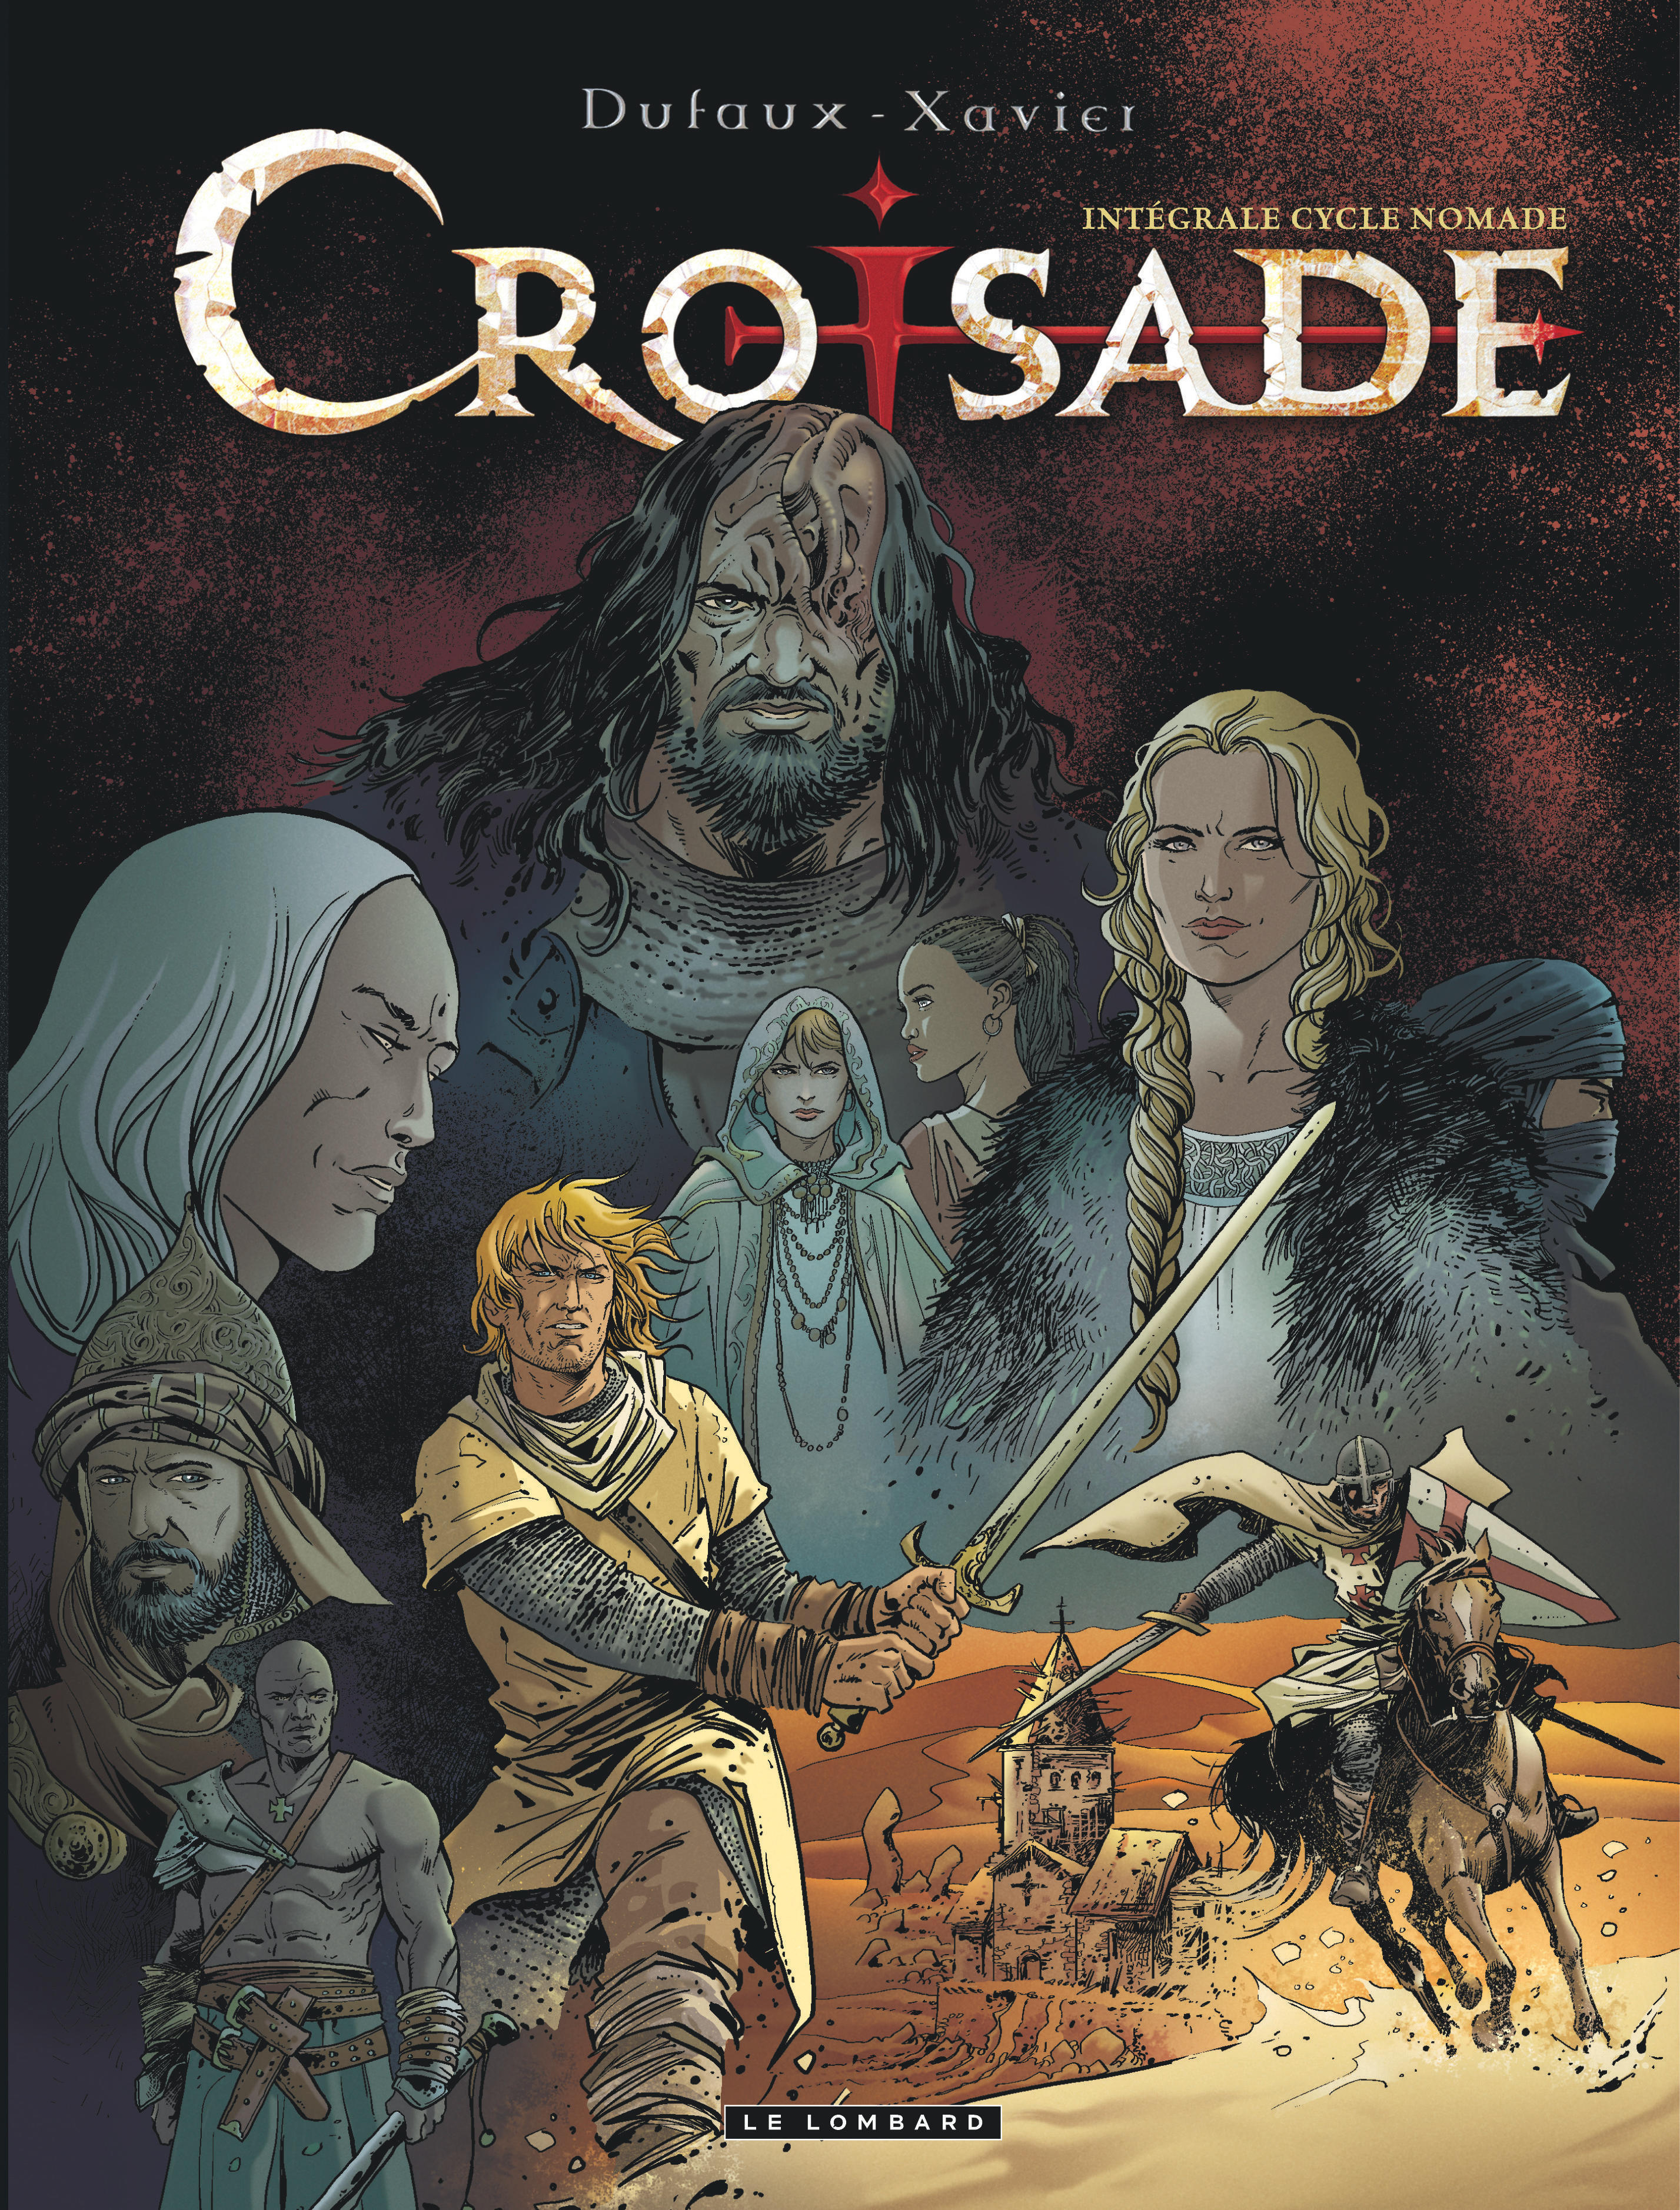 CROISADE (INTEGRALE) - INTEGRALE CROISADE - TOME 2 - INTEGRALE CROISADE - CYCLE NOMADE